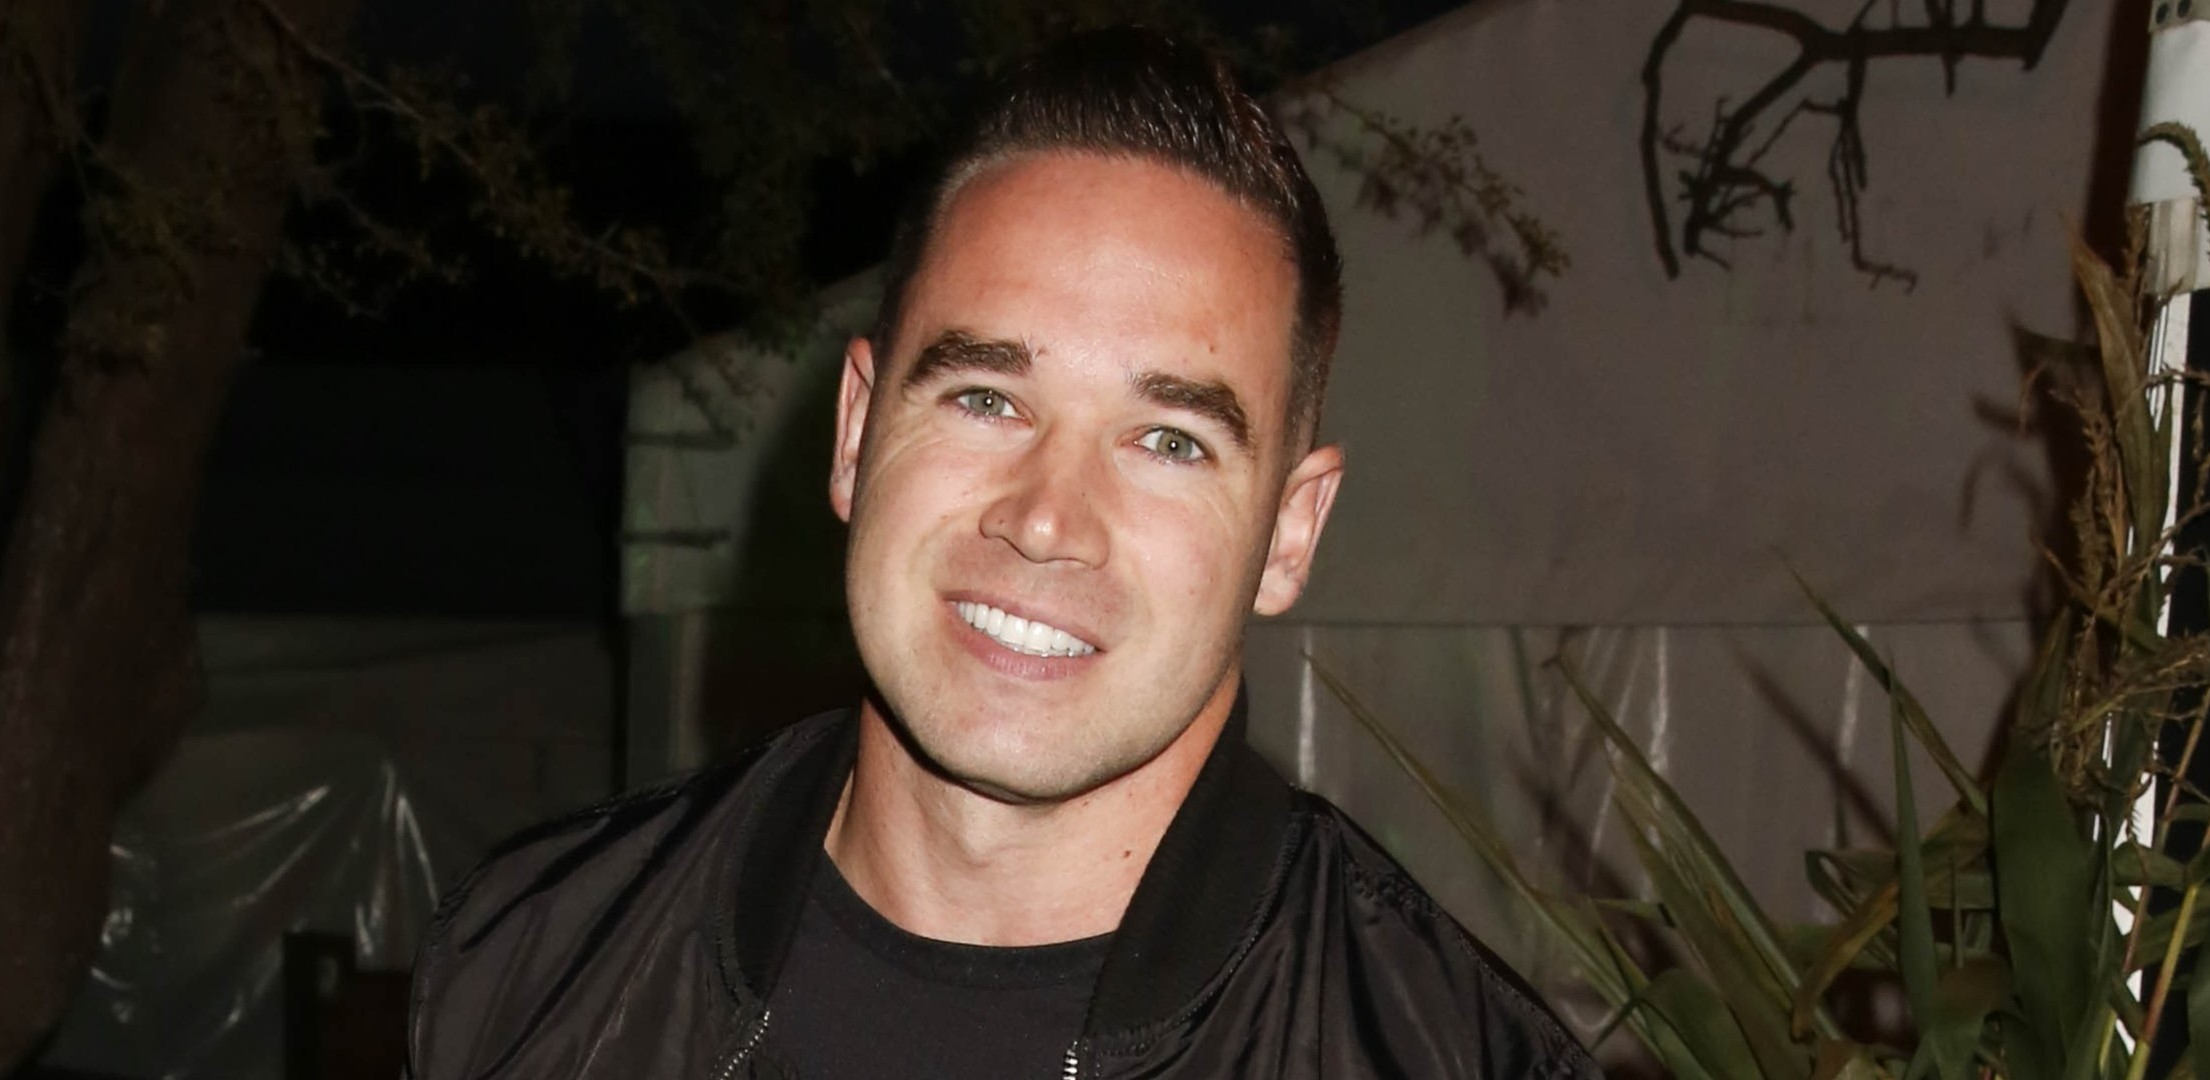 Katie Price's ex Kieran Hayler 'engaged' to girlfriend Michelle Penticost